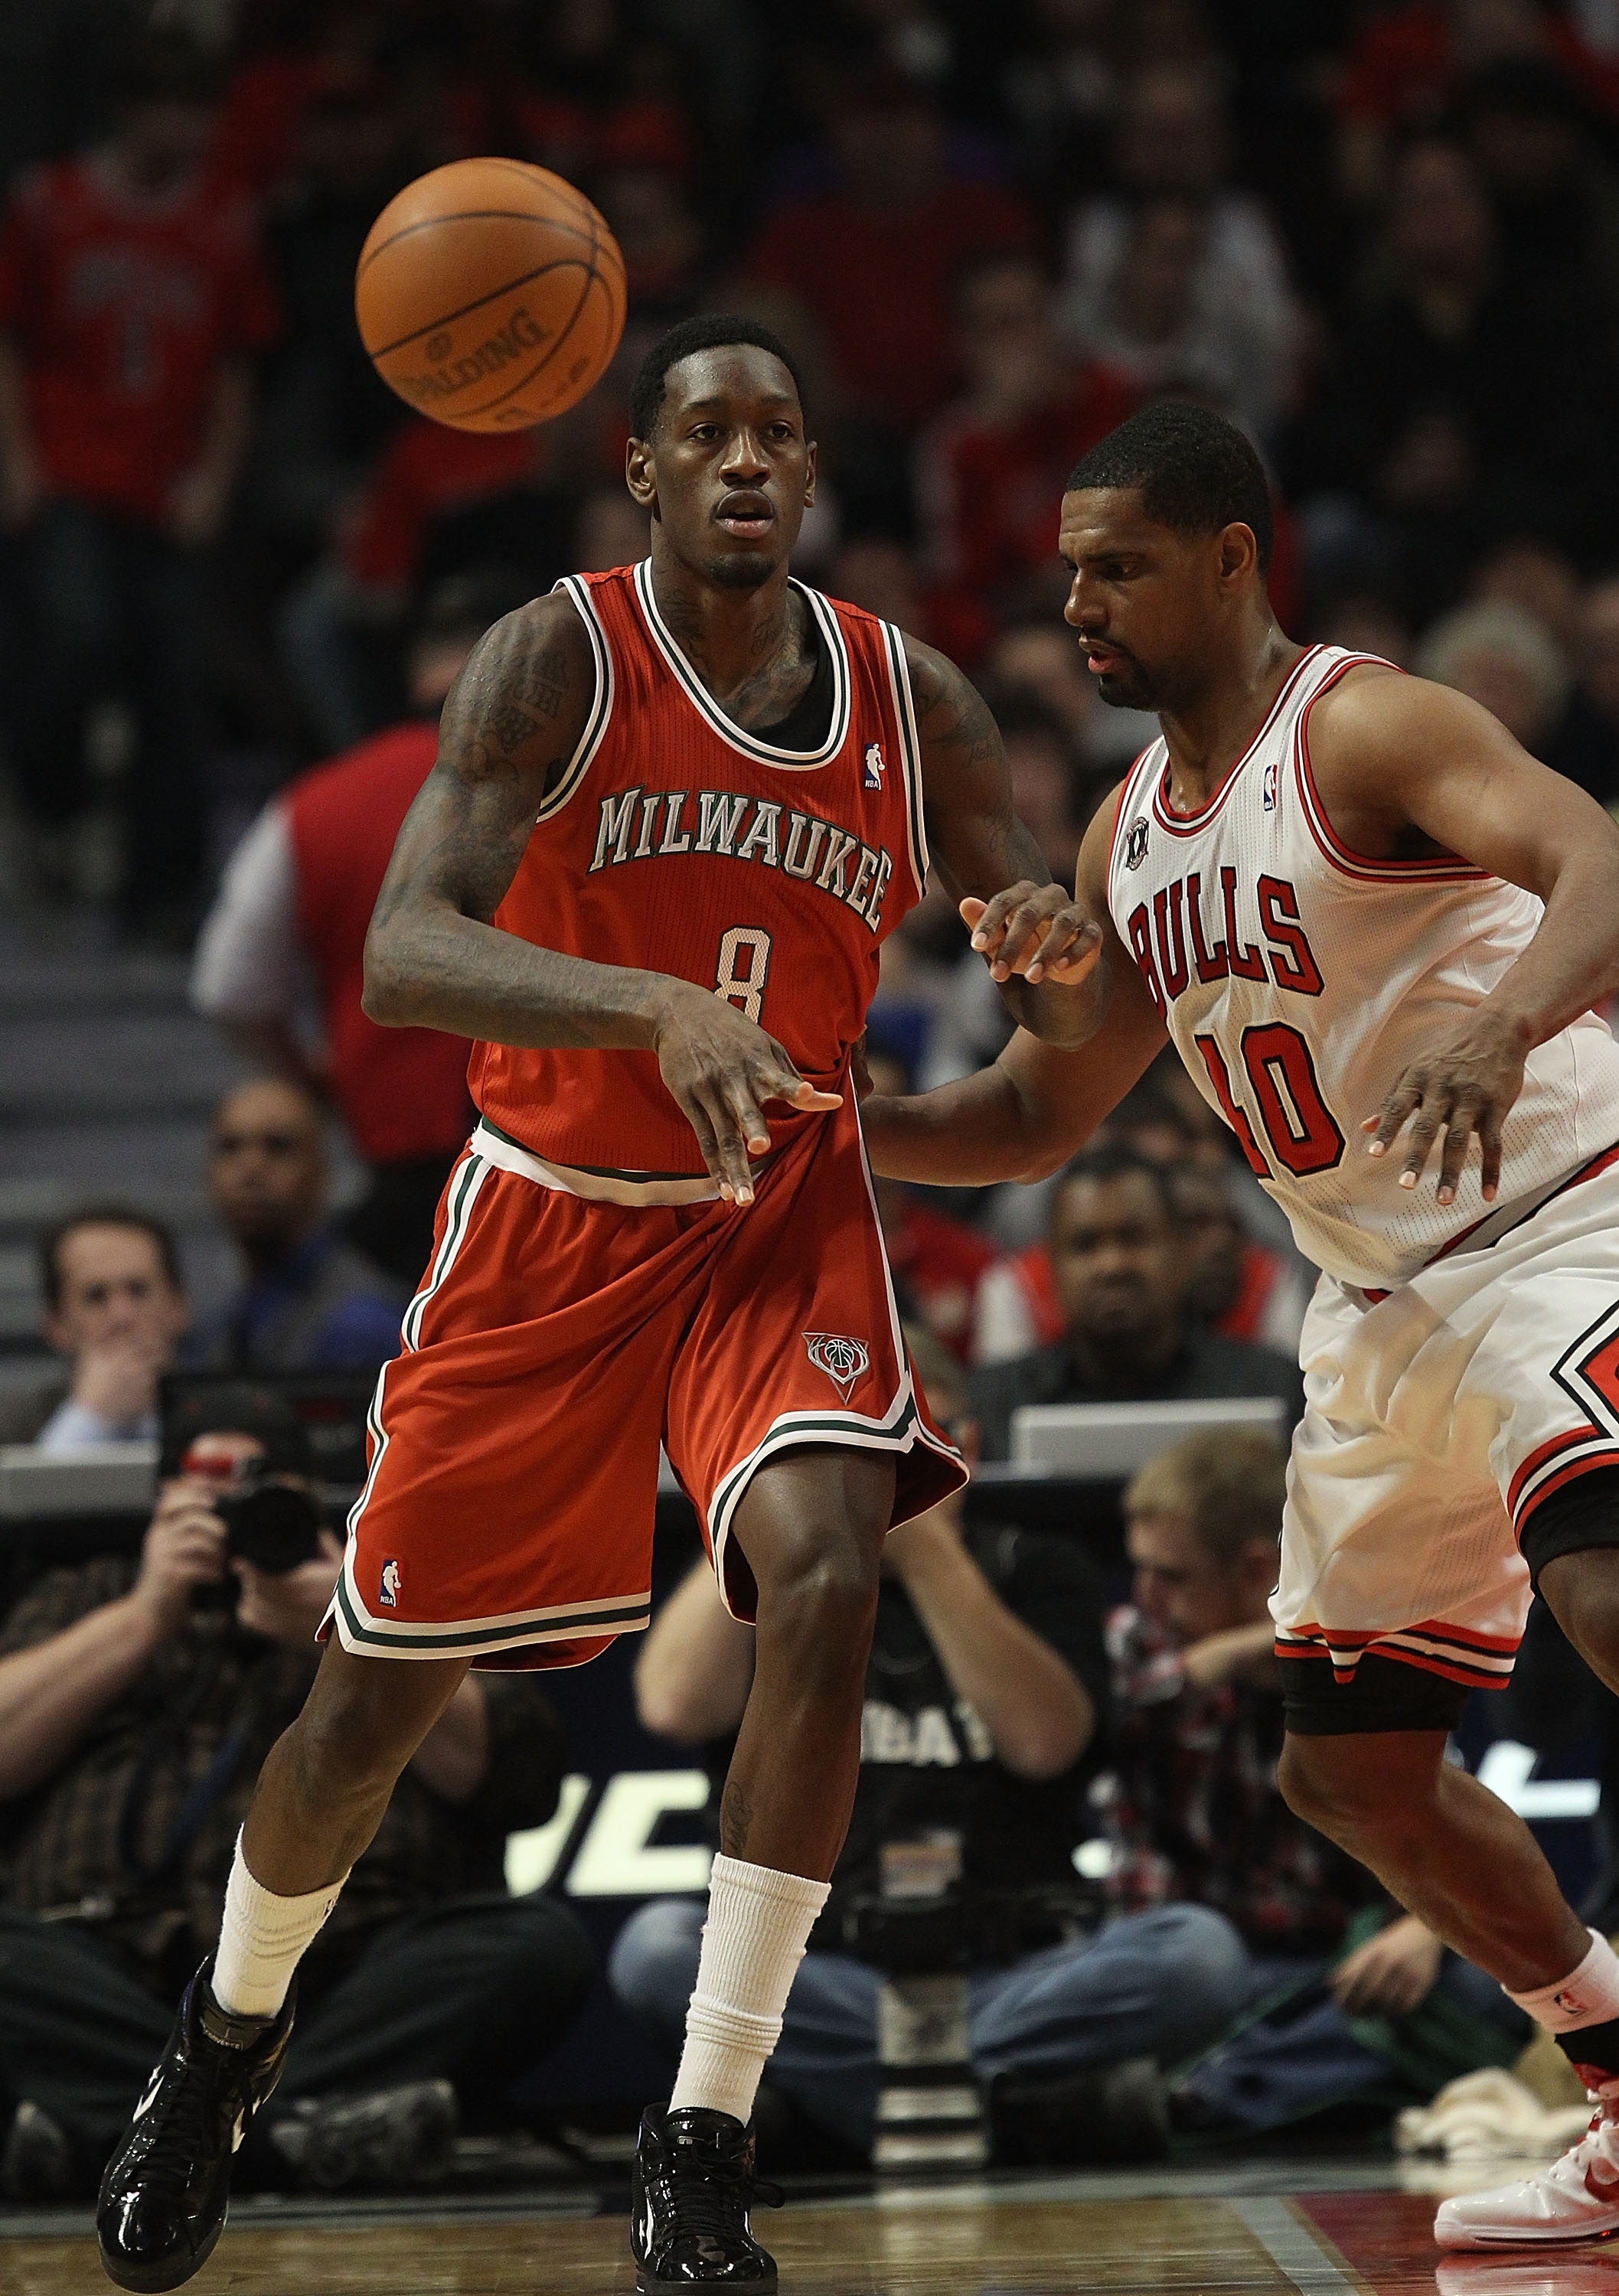 CHICAGO, IL - DECEMBER 28: Larry Sanders #8 of the Milwaukee Bucks passes the ball against Kurt Thomas #40 of the Chicago Bulls at the United Center on December 28, 2010 in Chicago, Illinois. The Bulls defeated the Bucks 90-77. NOTE TO USER: User expressl